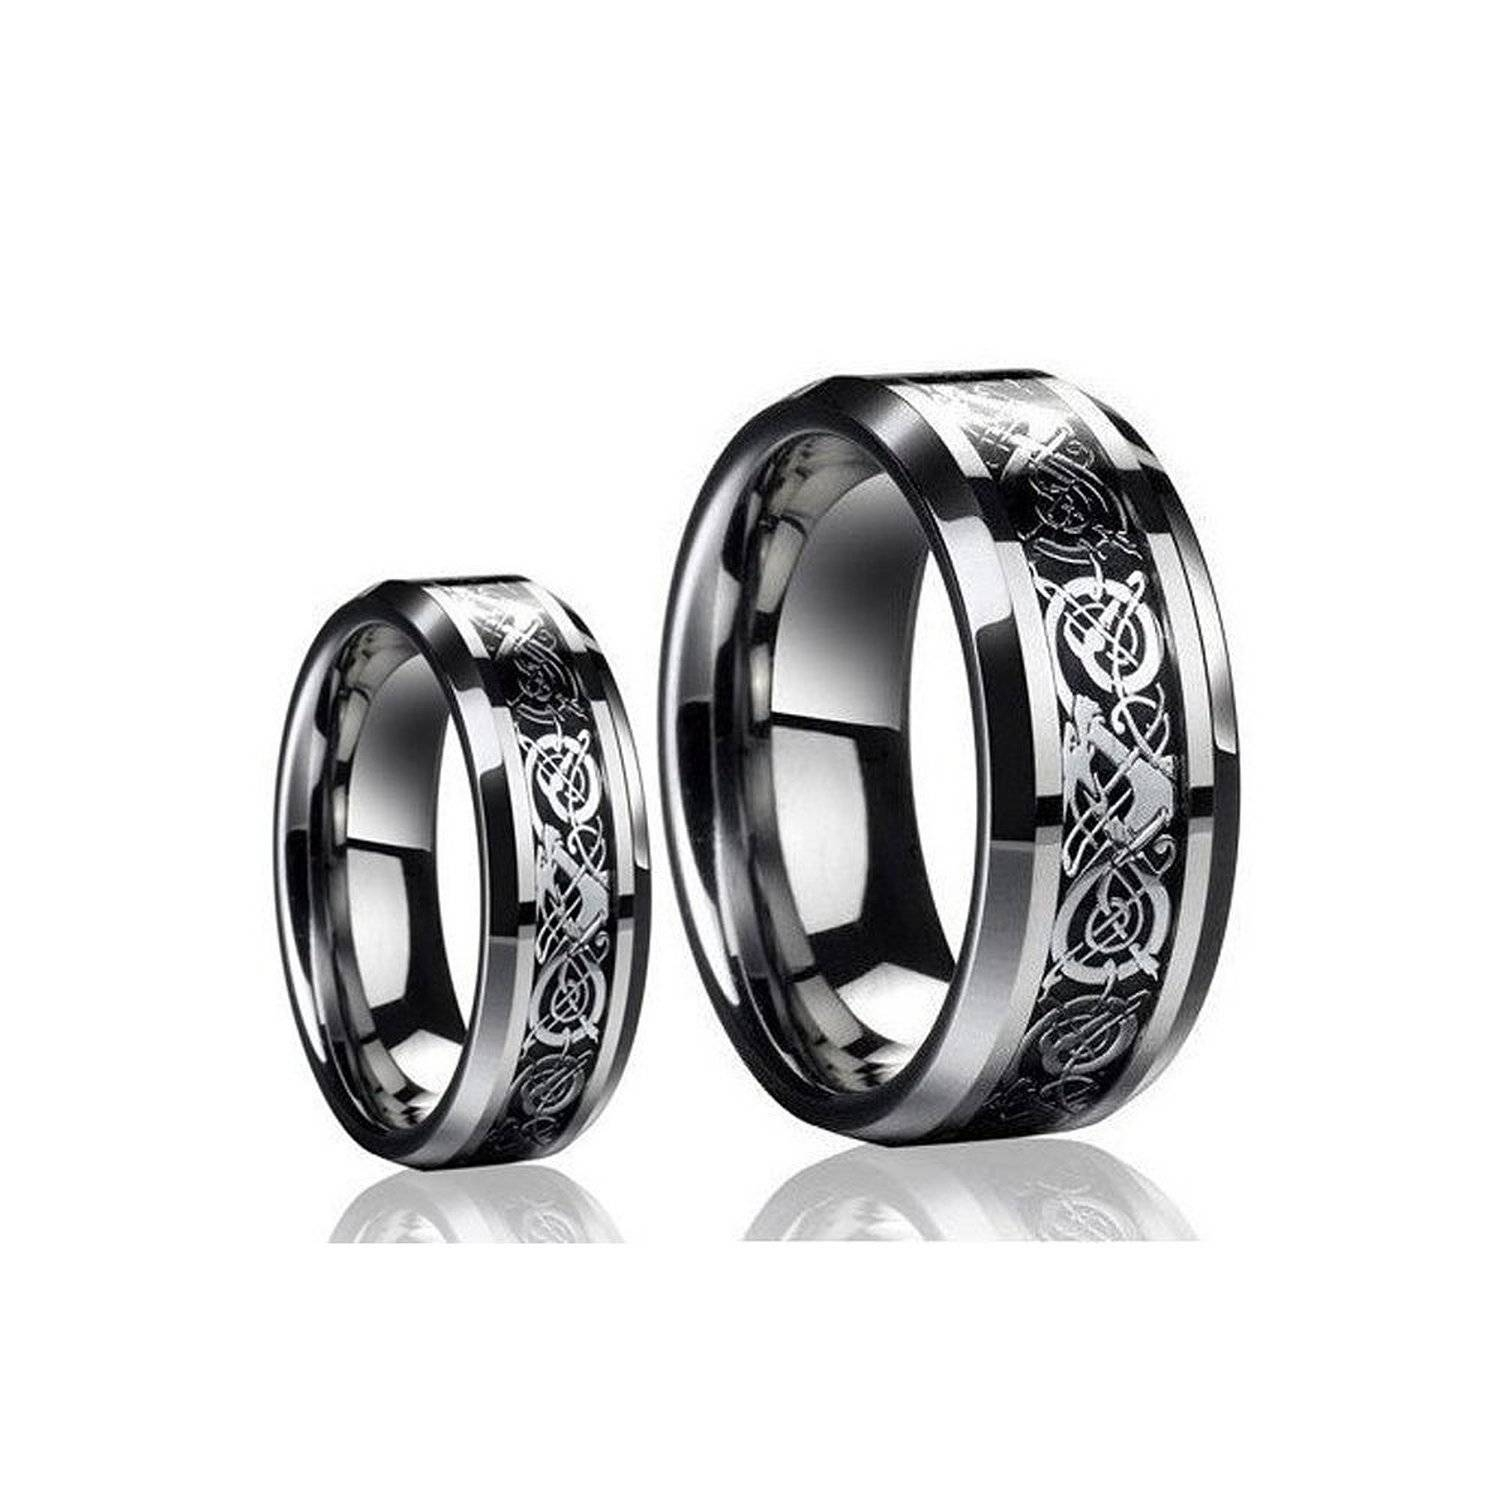 15 Best Collection Of Black Titanium Wedding Bands Sets